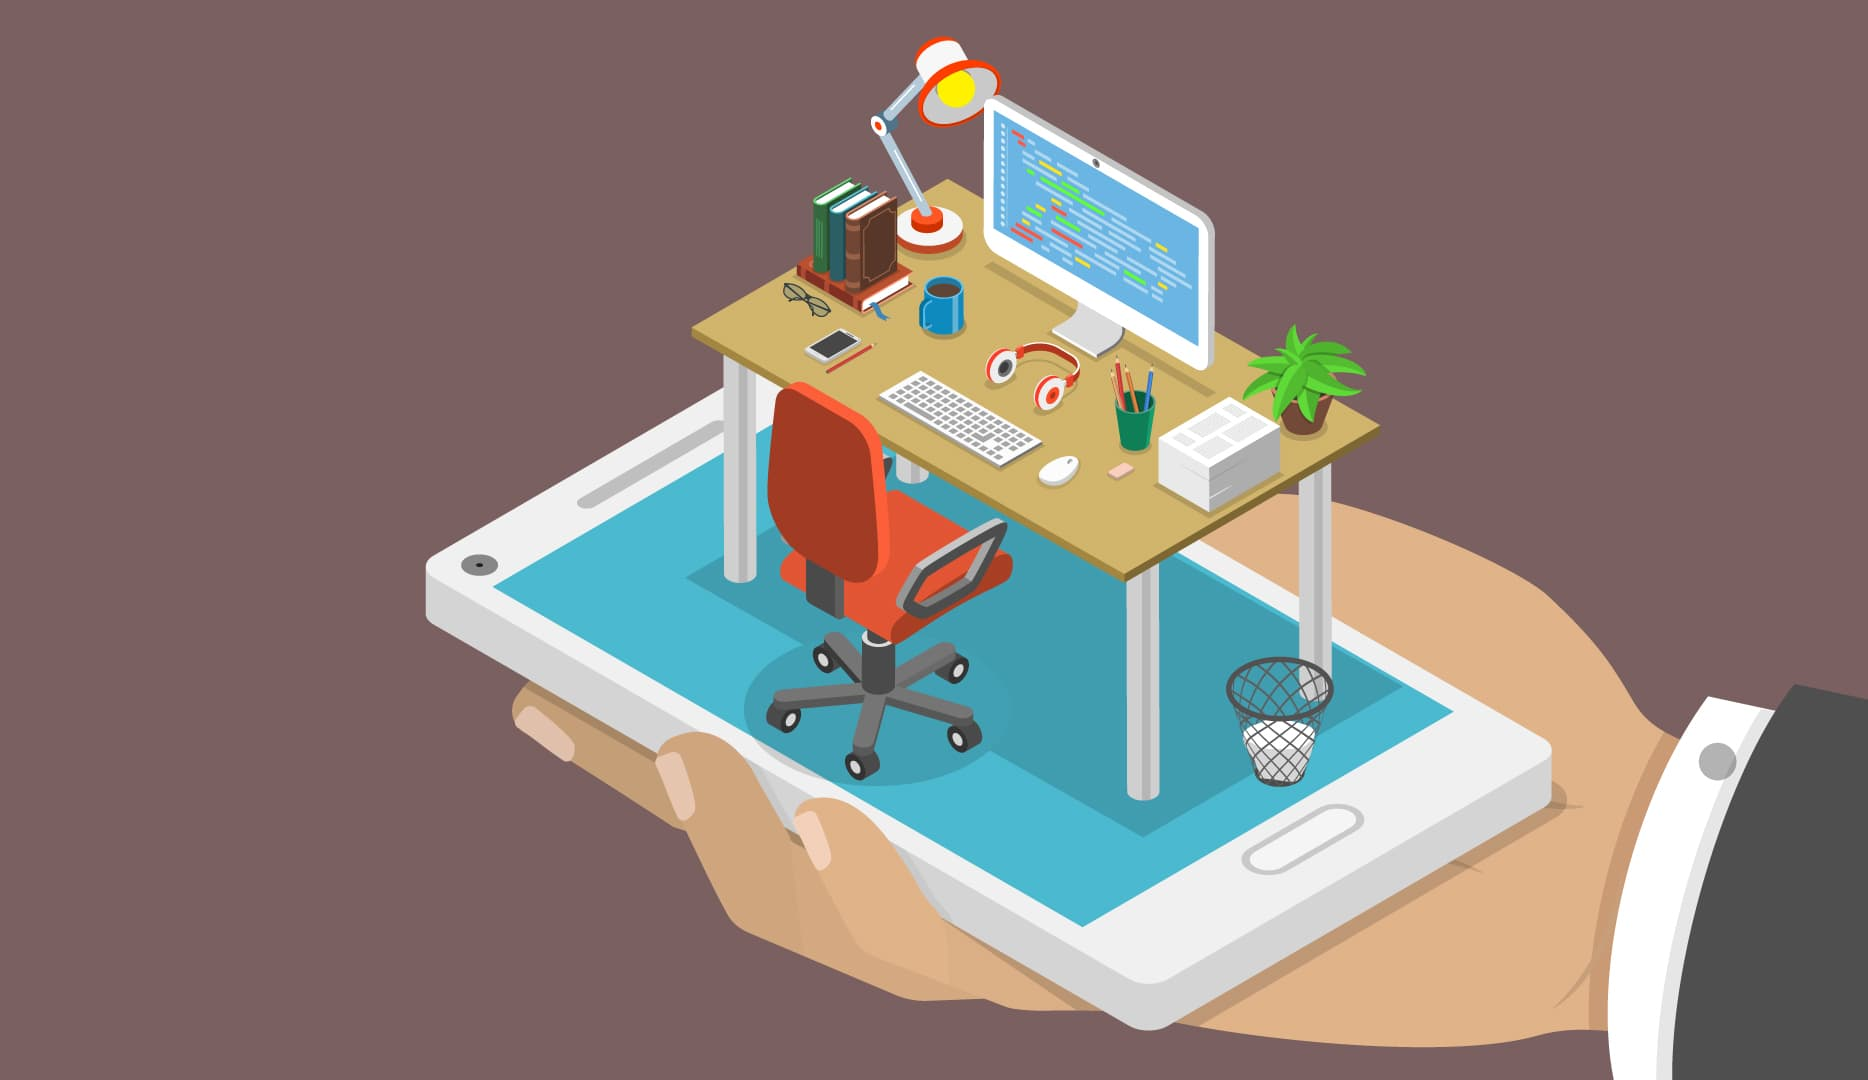 Don't Let These 5 App Fears Stop Mobile Recruiting